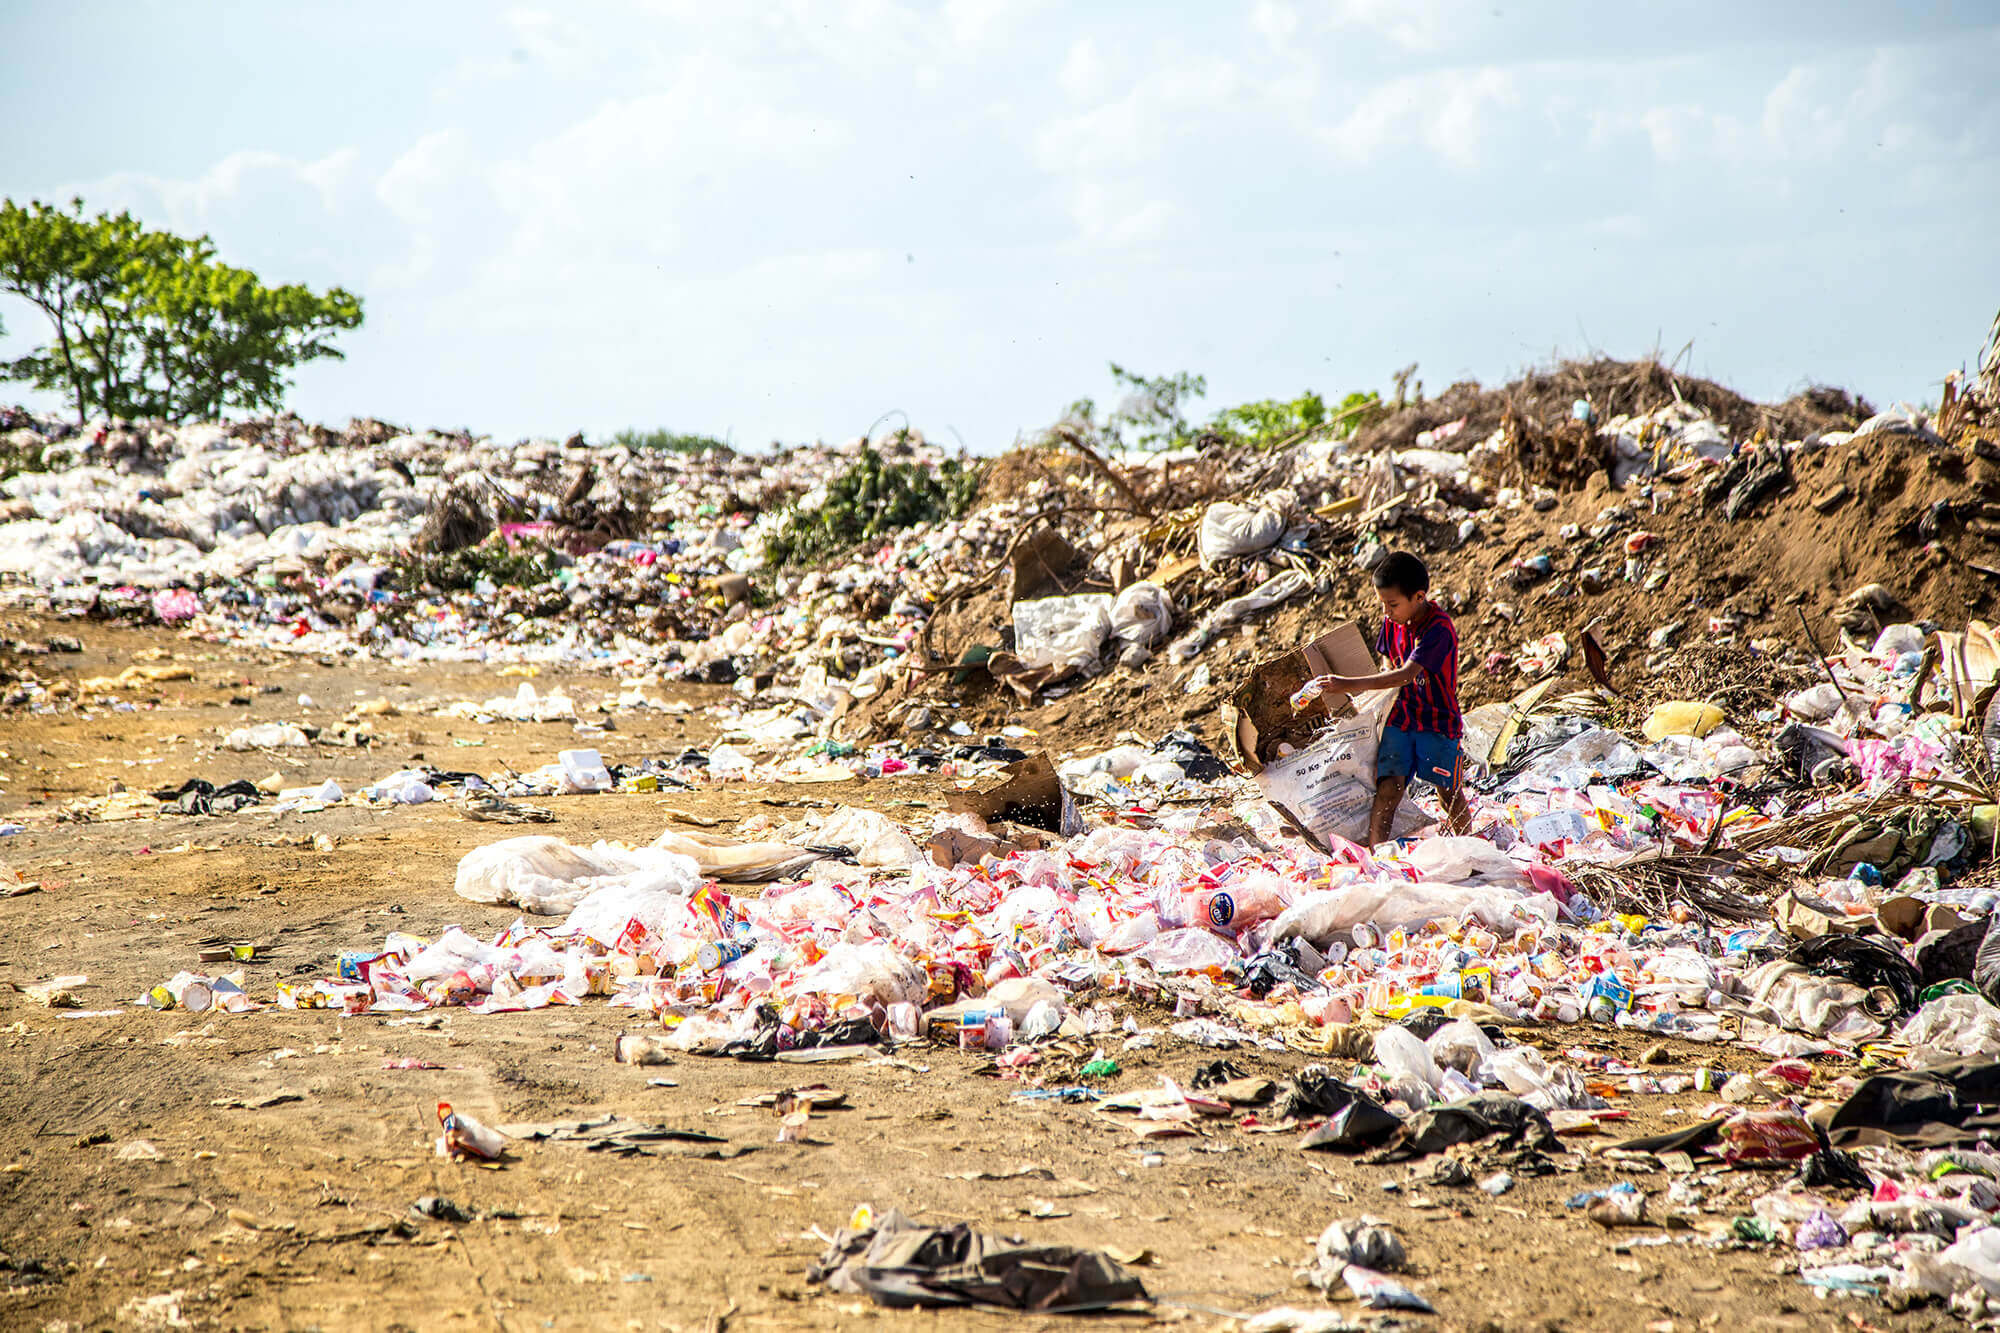 A young child walking through a waste plant